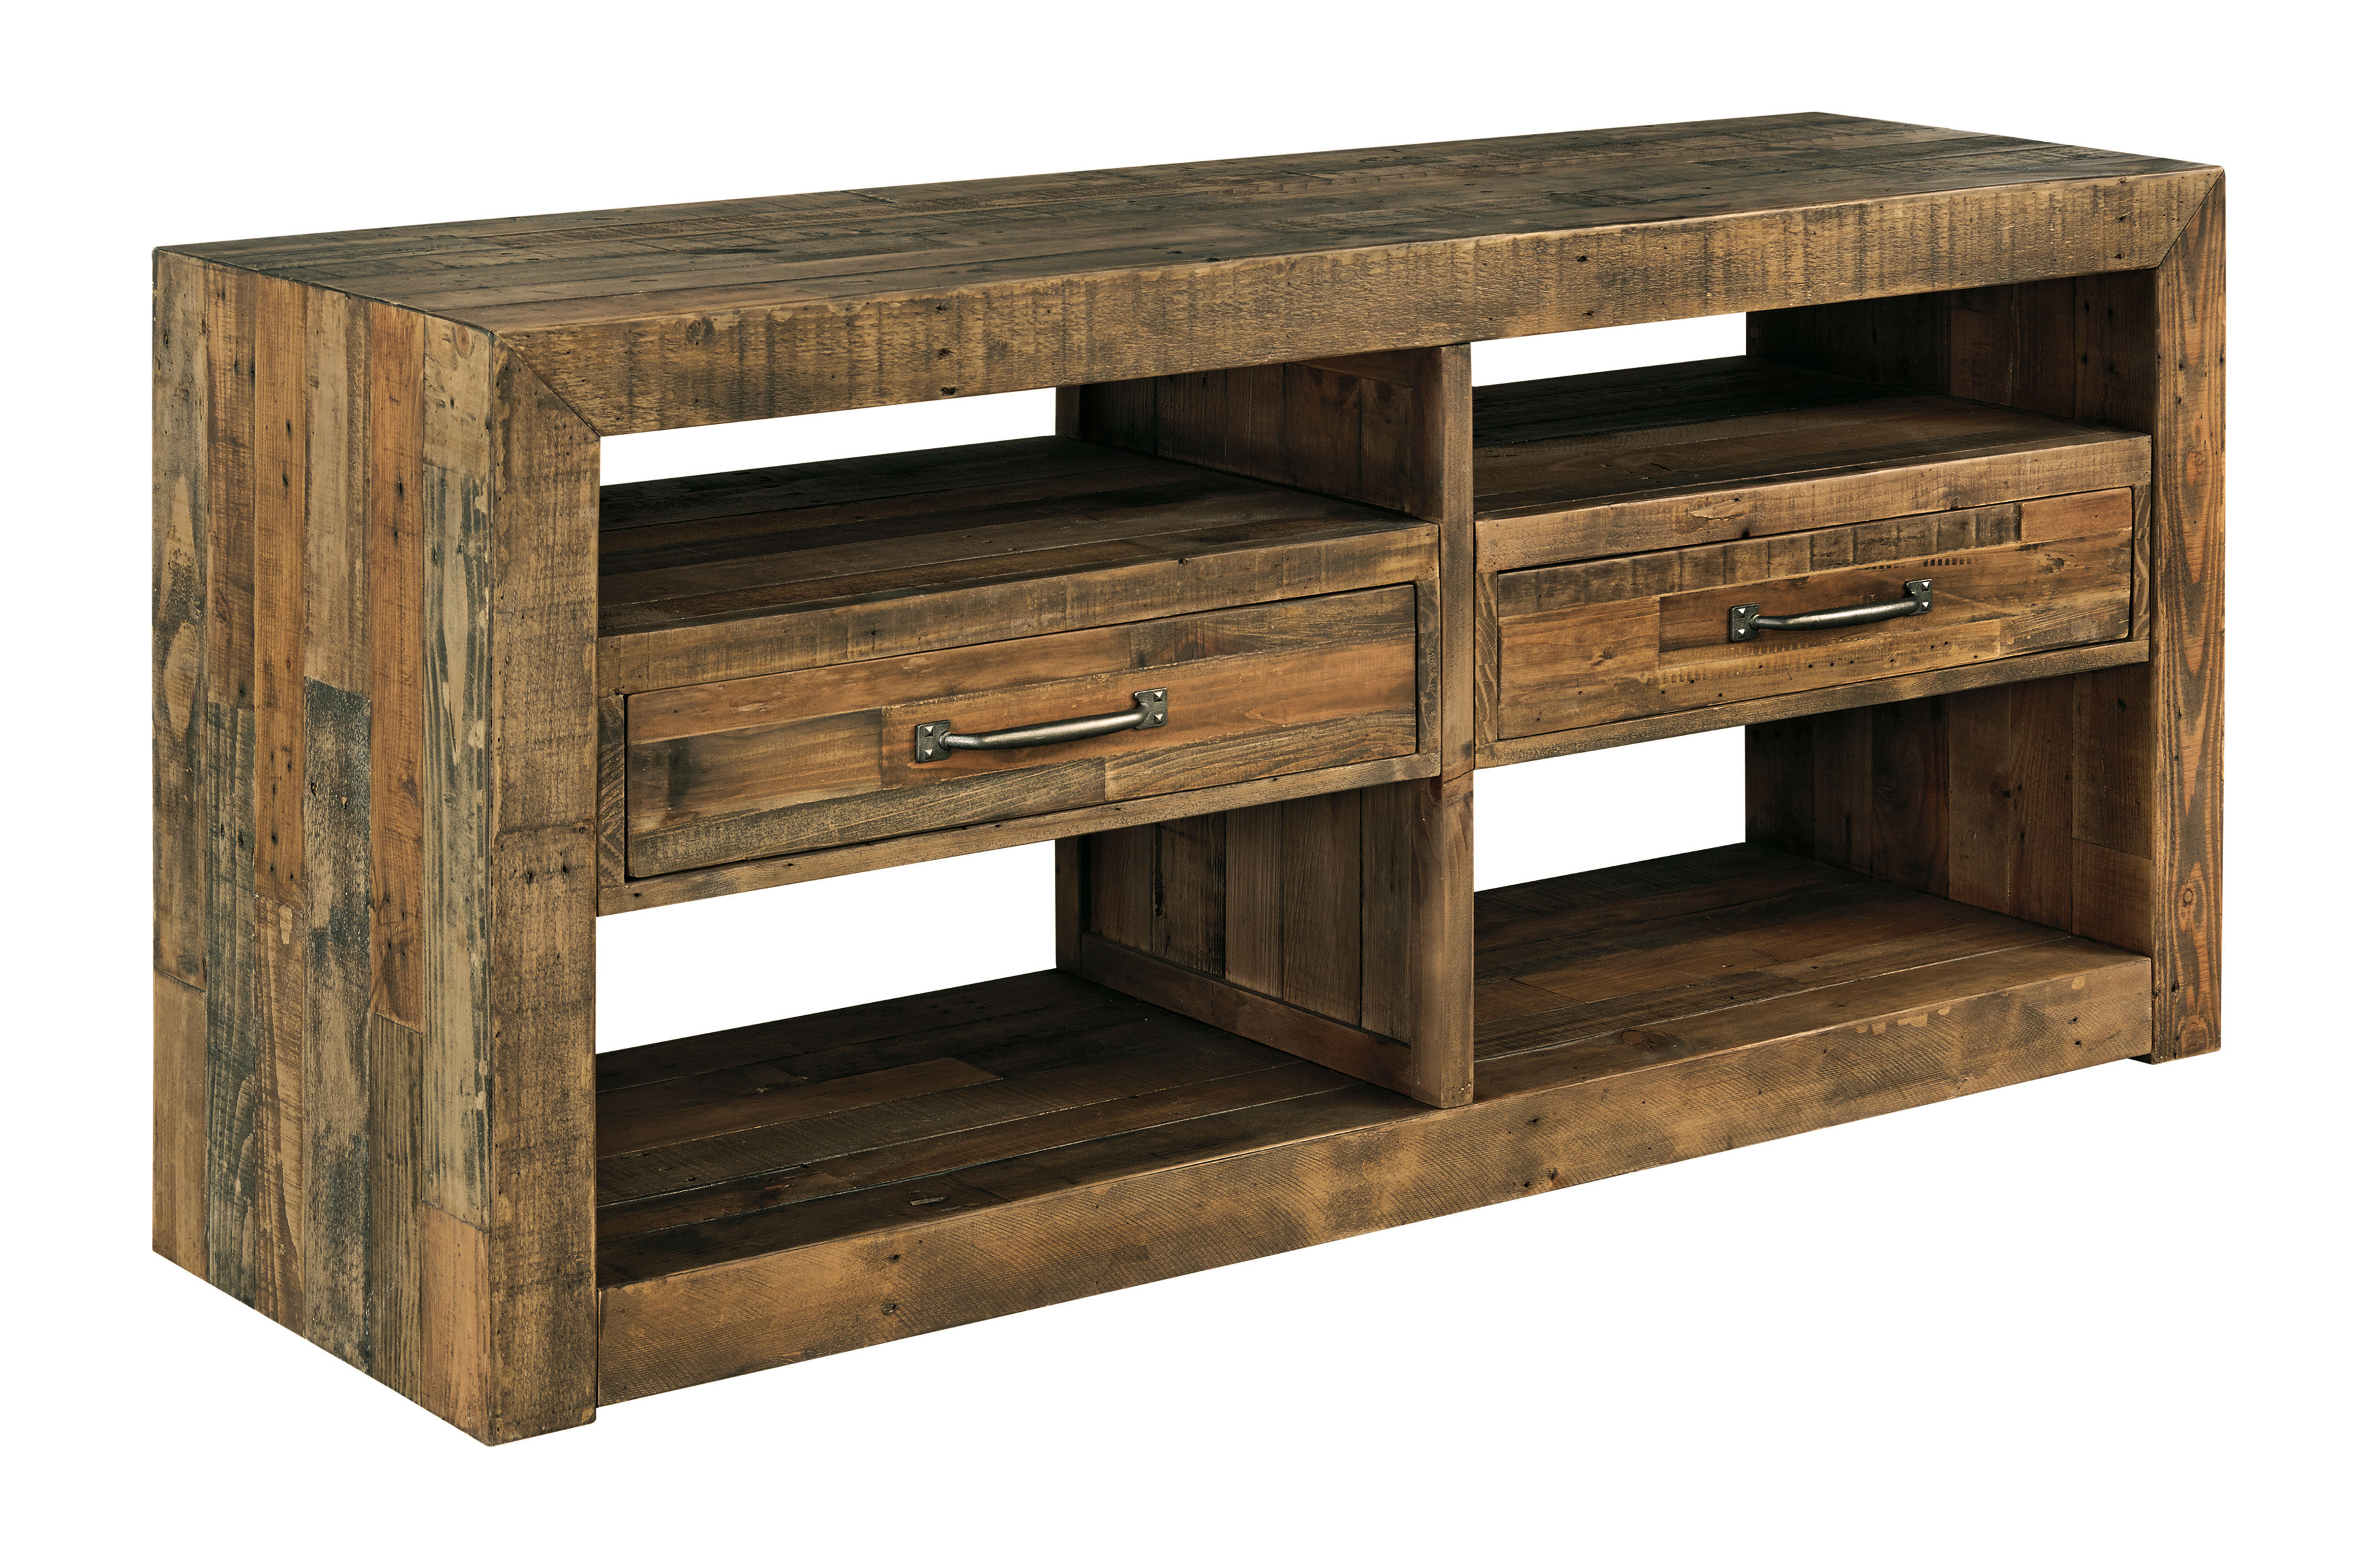 Lark Manor Saguenay Sideboard | Birch Lane For Most Up To Date Saguenay Sideboards (View 18 of 20)